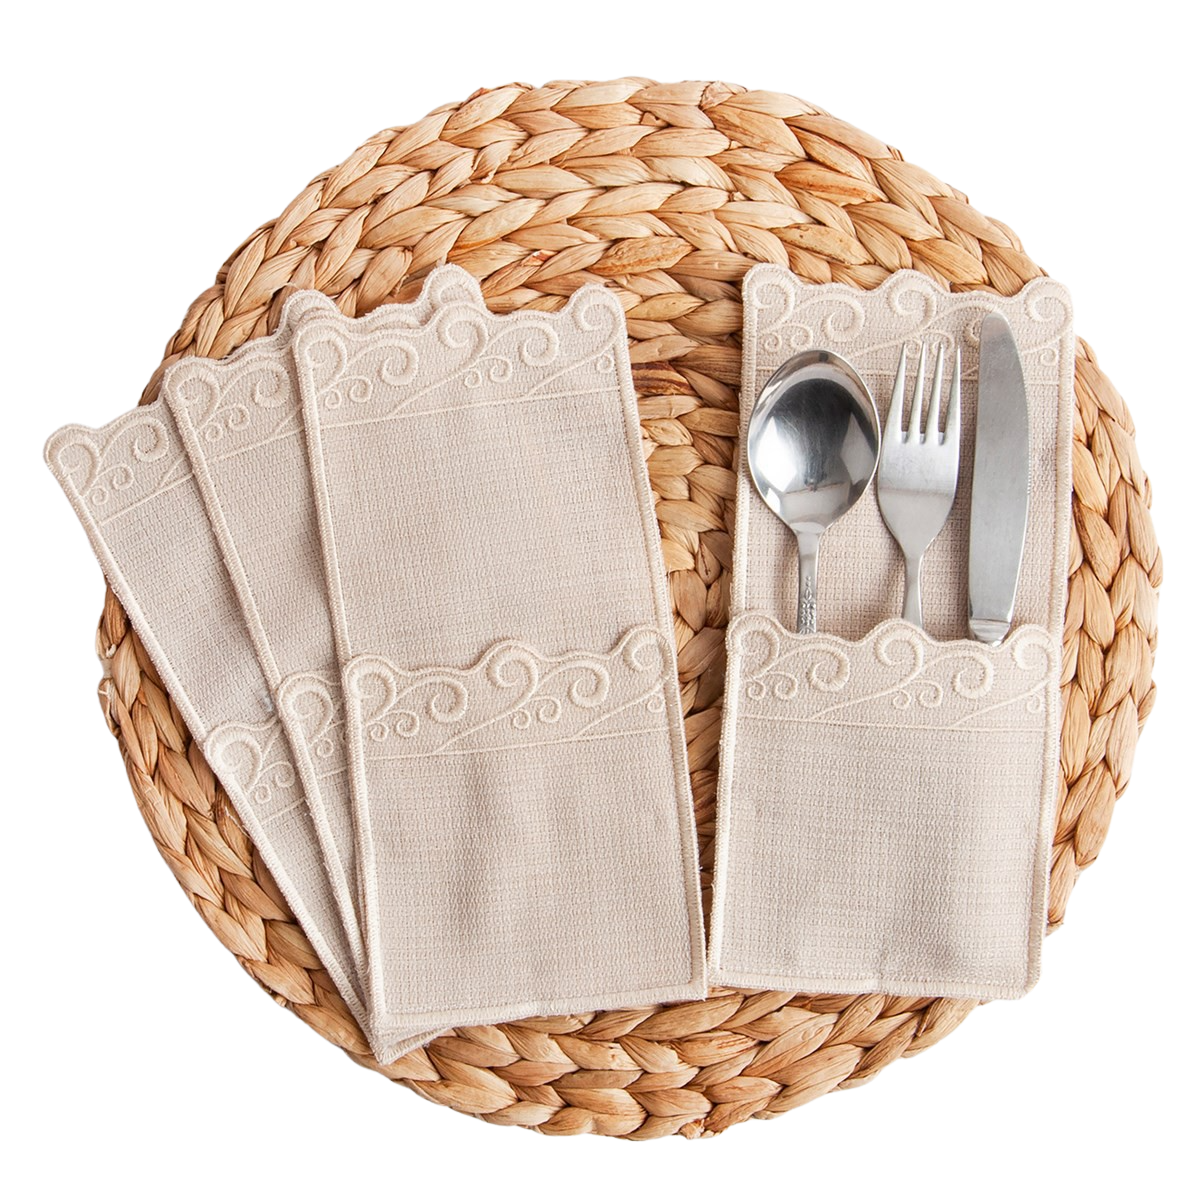 Set of 12 Embroidered Stain Resistant Cutlery Linen Fabric Cloth Table Napkin Dishes Napkins Table Decorative Wedding Party Gift